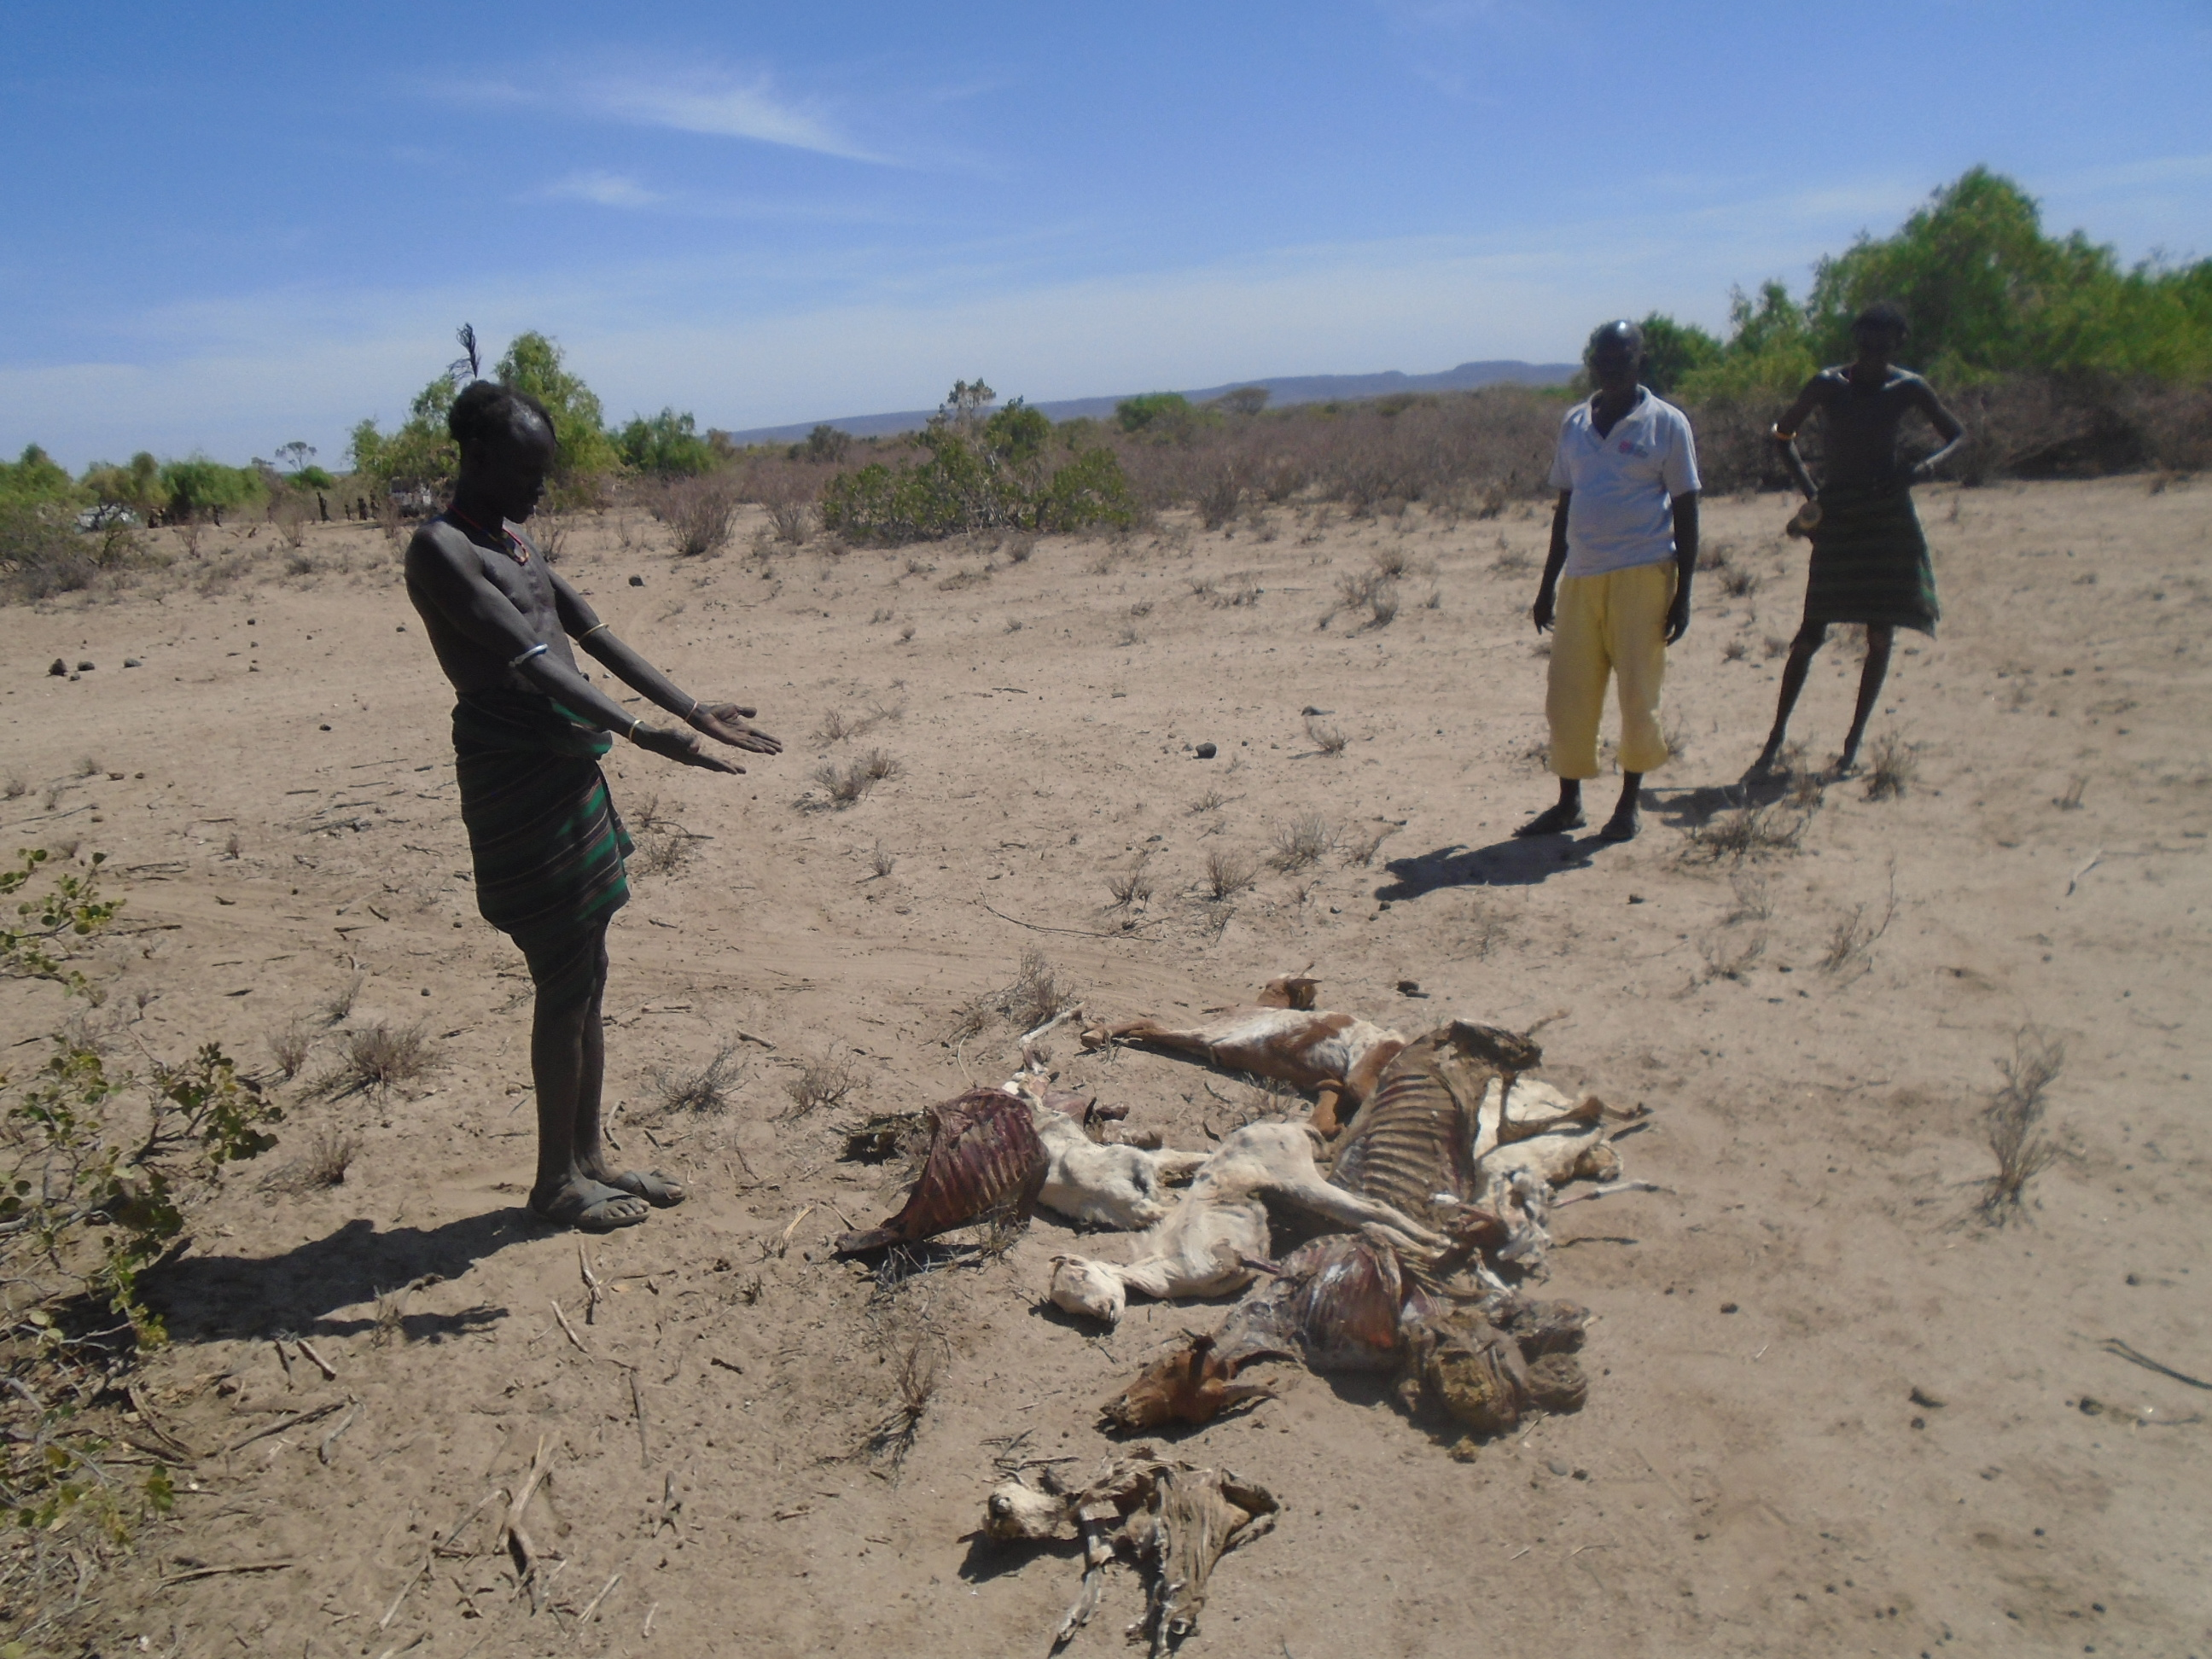 In northern Kenya, around 2.7 million people are living in the grip of a punishing drought. Photo: Malteser International